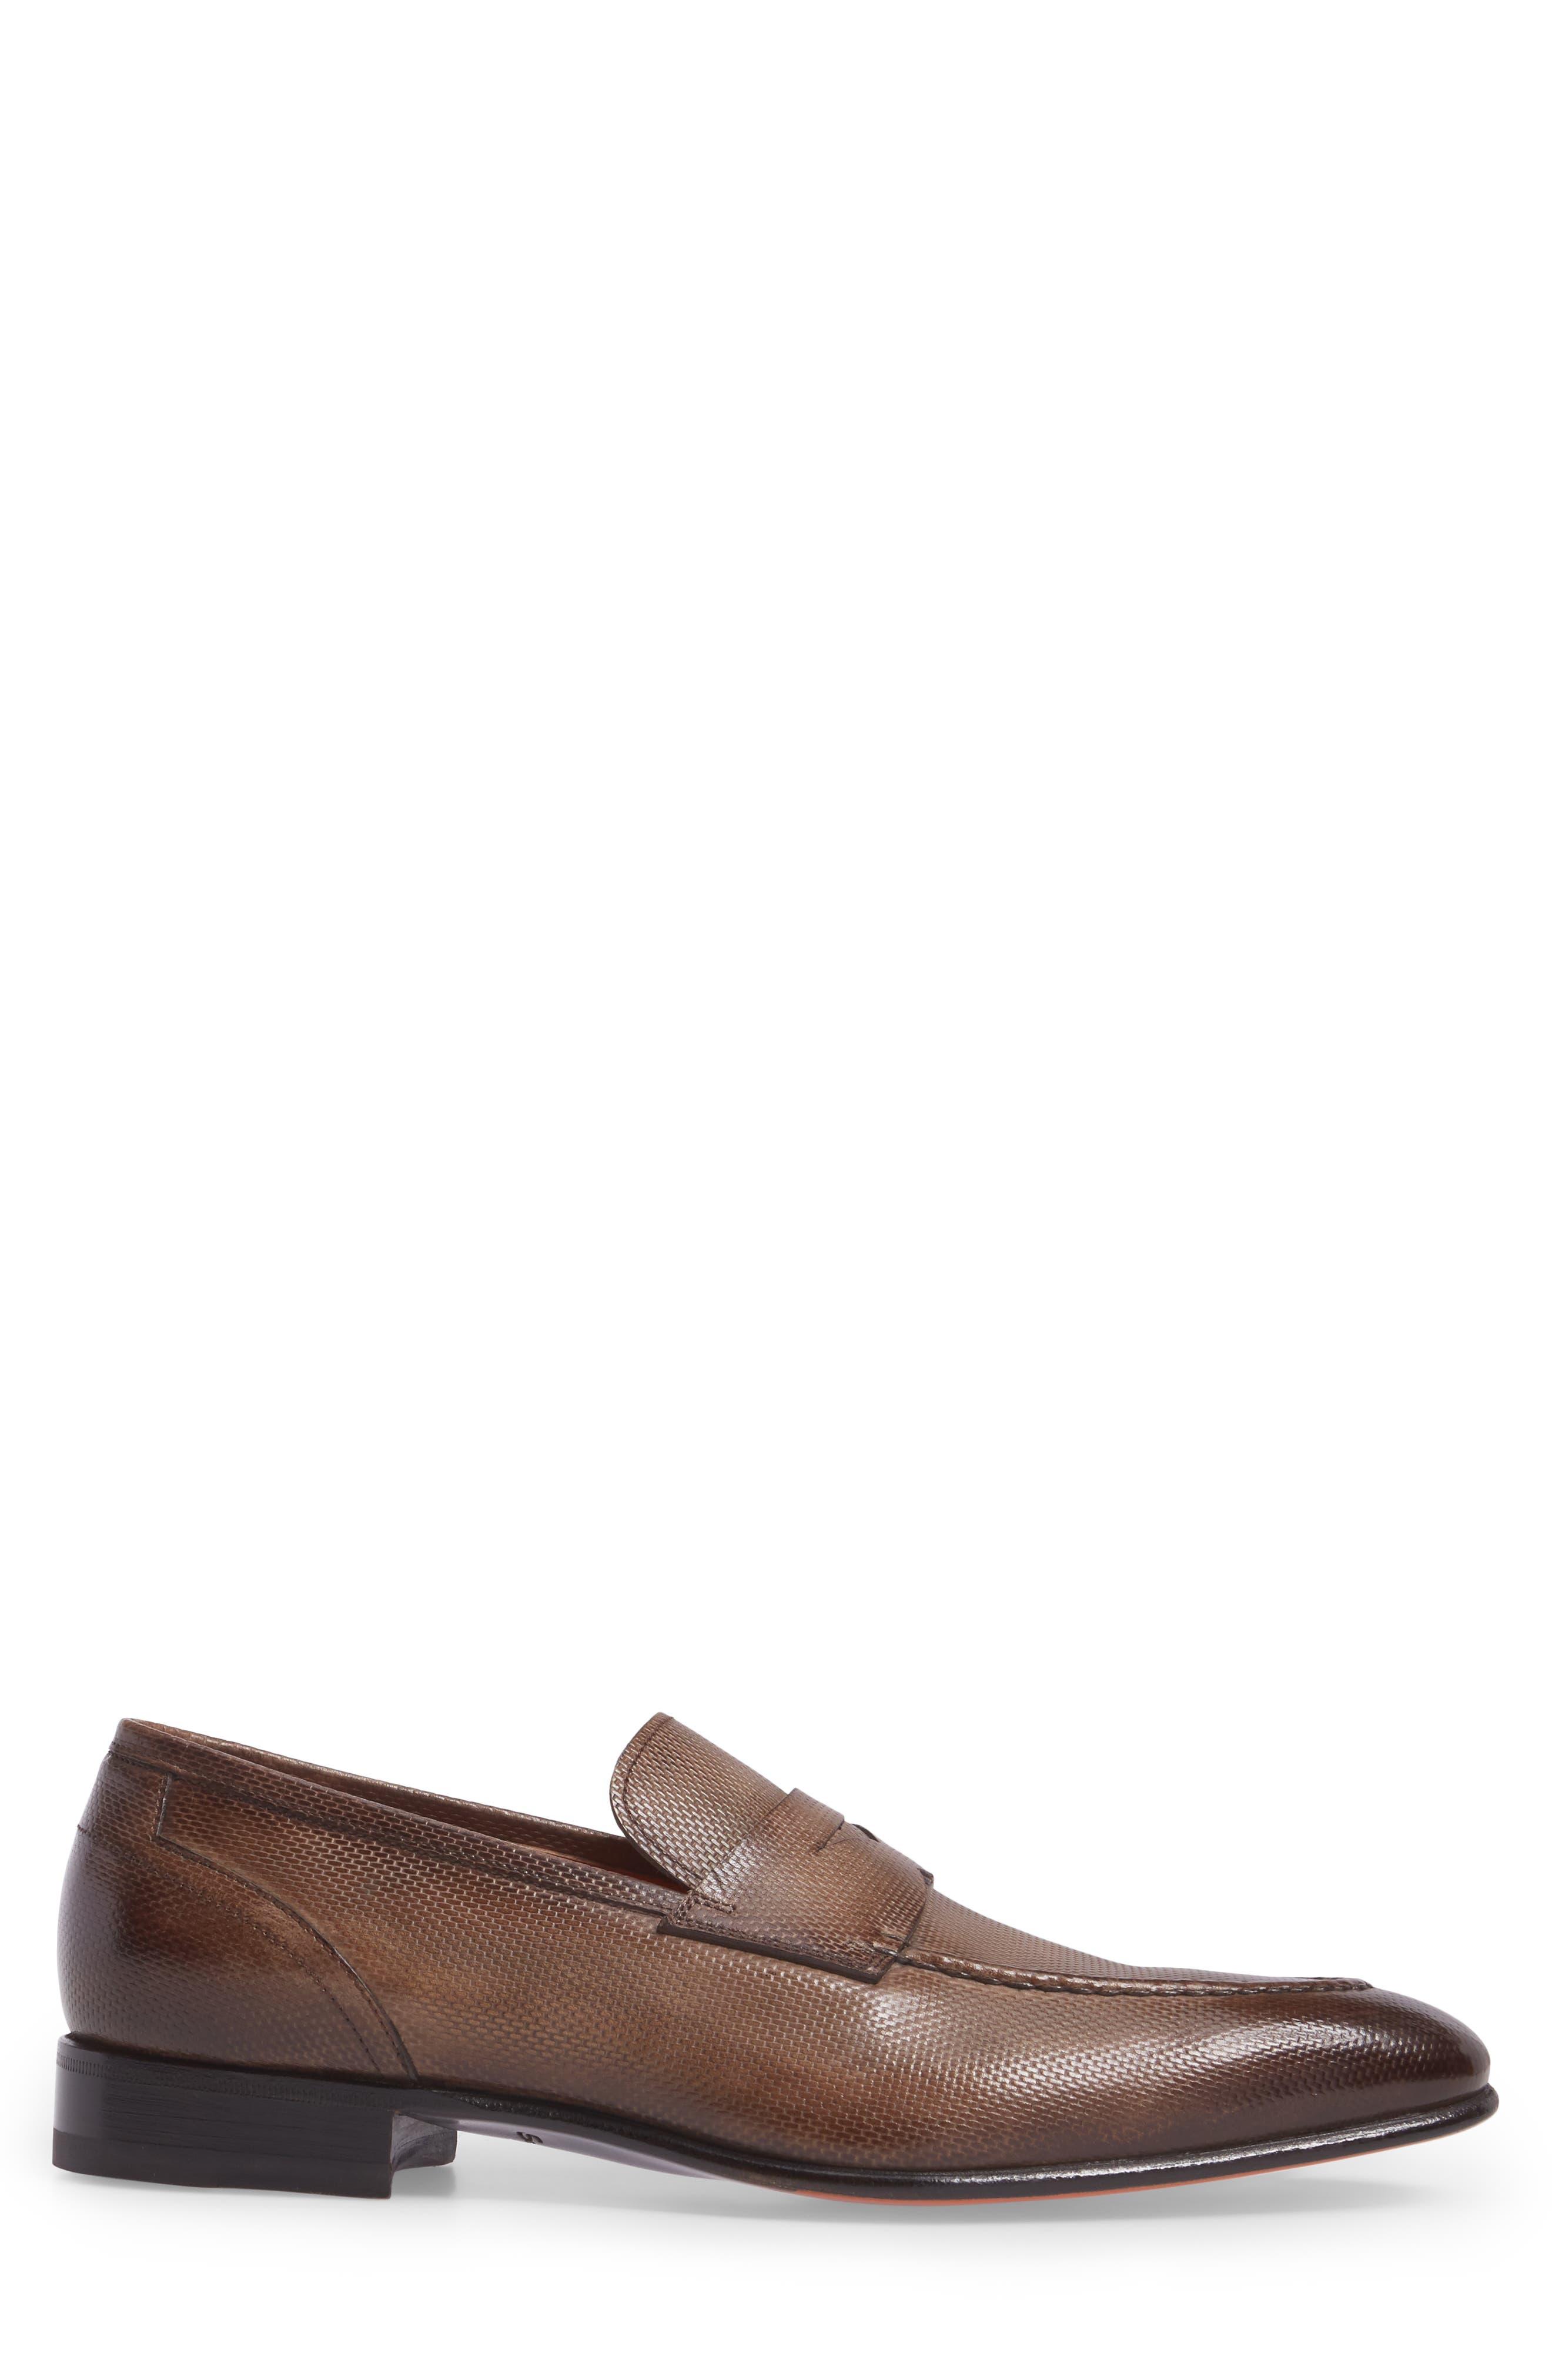 Felipe Penny Loafer,                             Alternate thumbnail 3, color,                             Brown